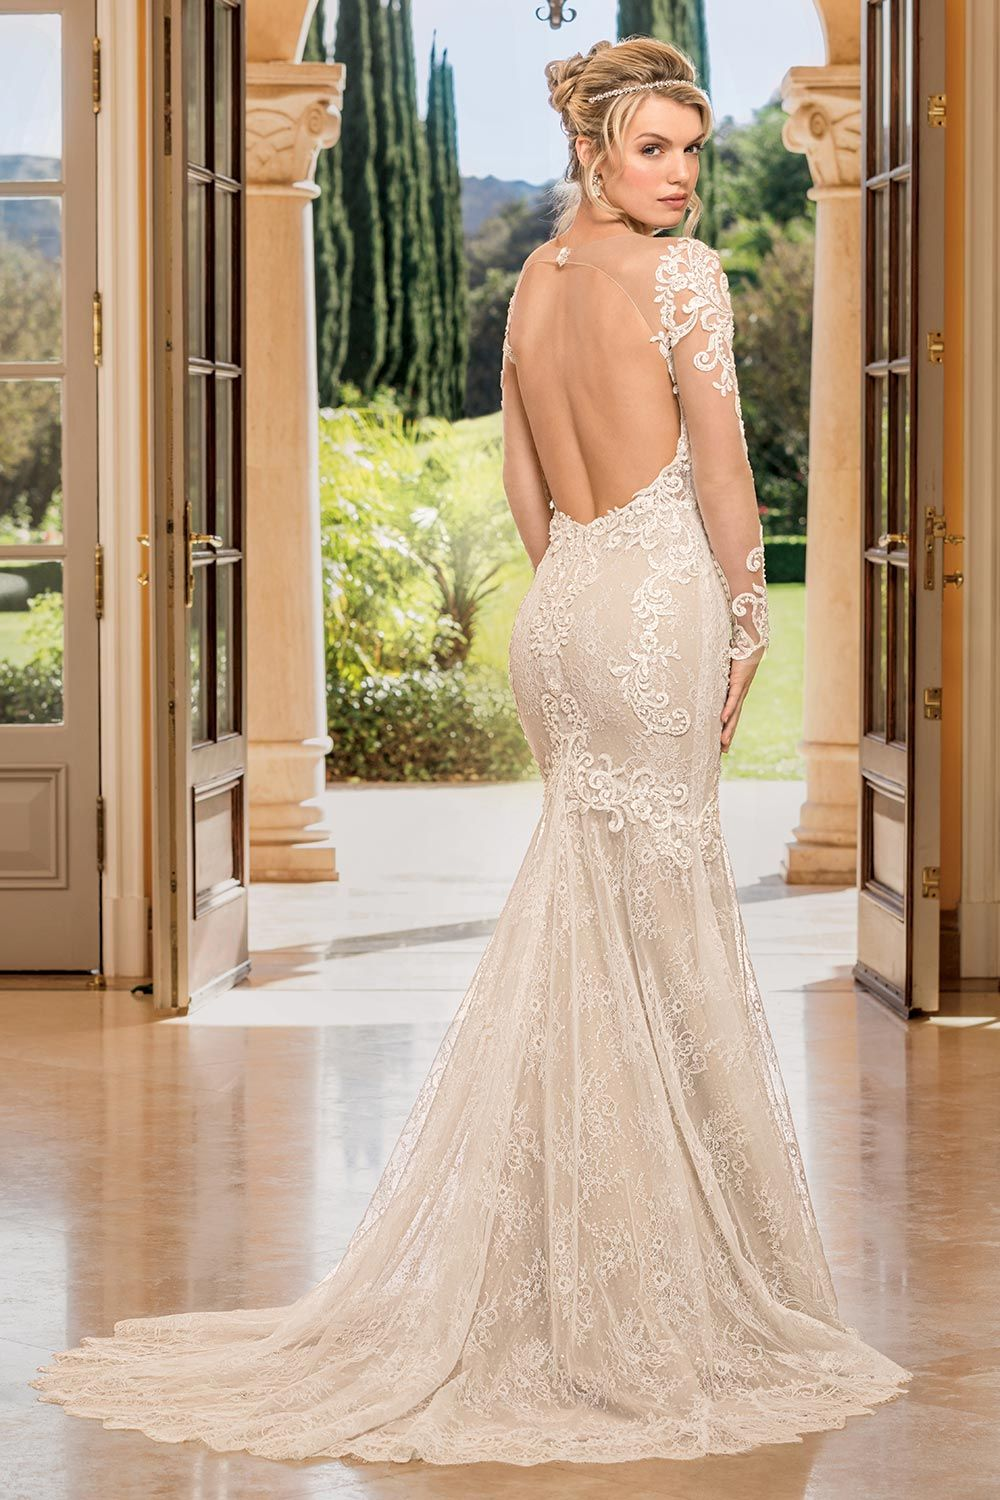 Casablanca Fall 2018 Bridal Collection Inspired by